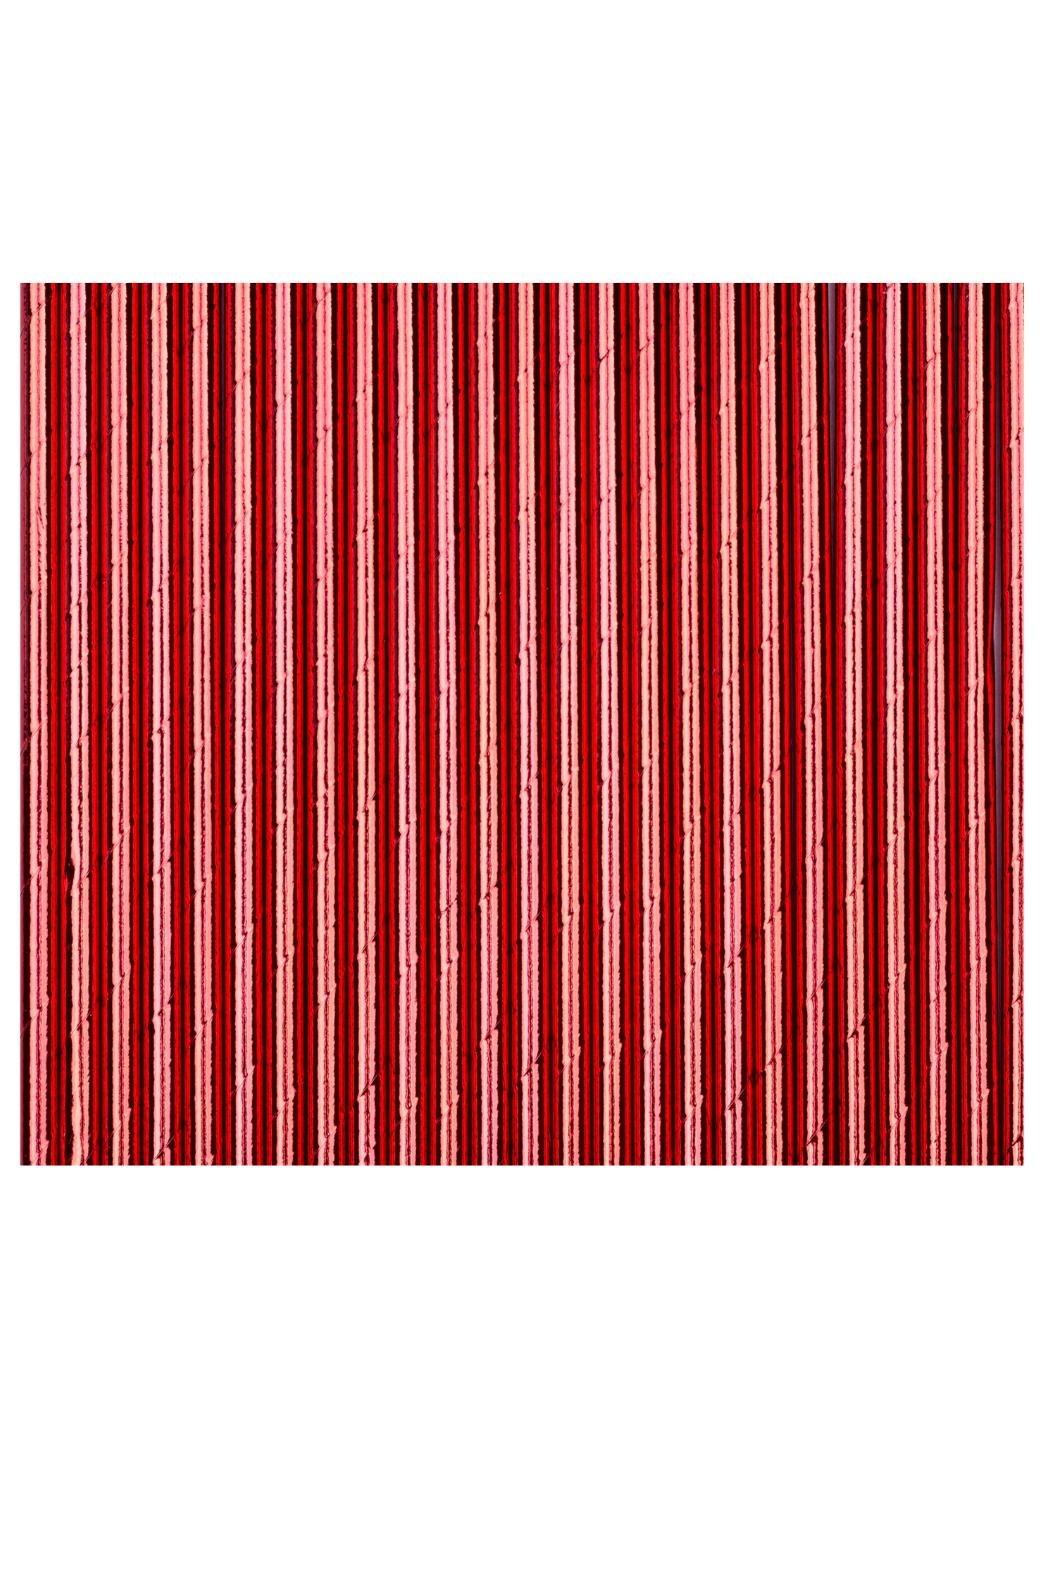 Jollity & Co Foil Paper Straws, Red - Main Image